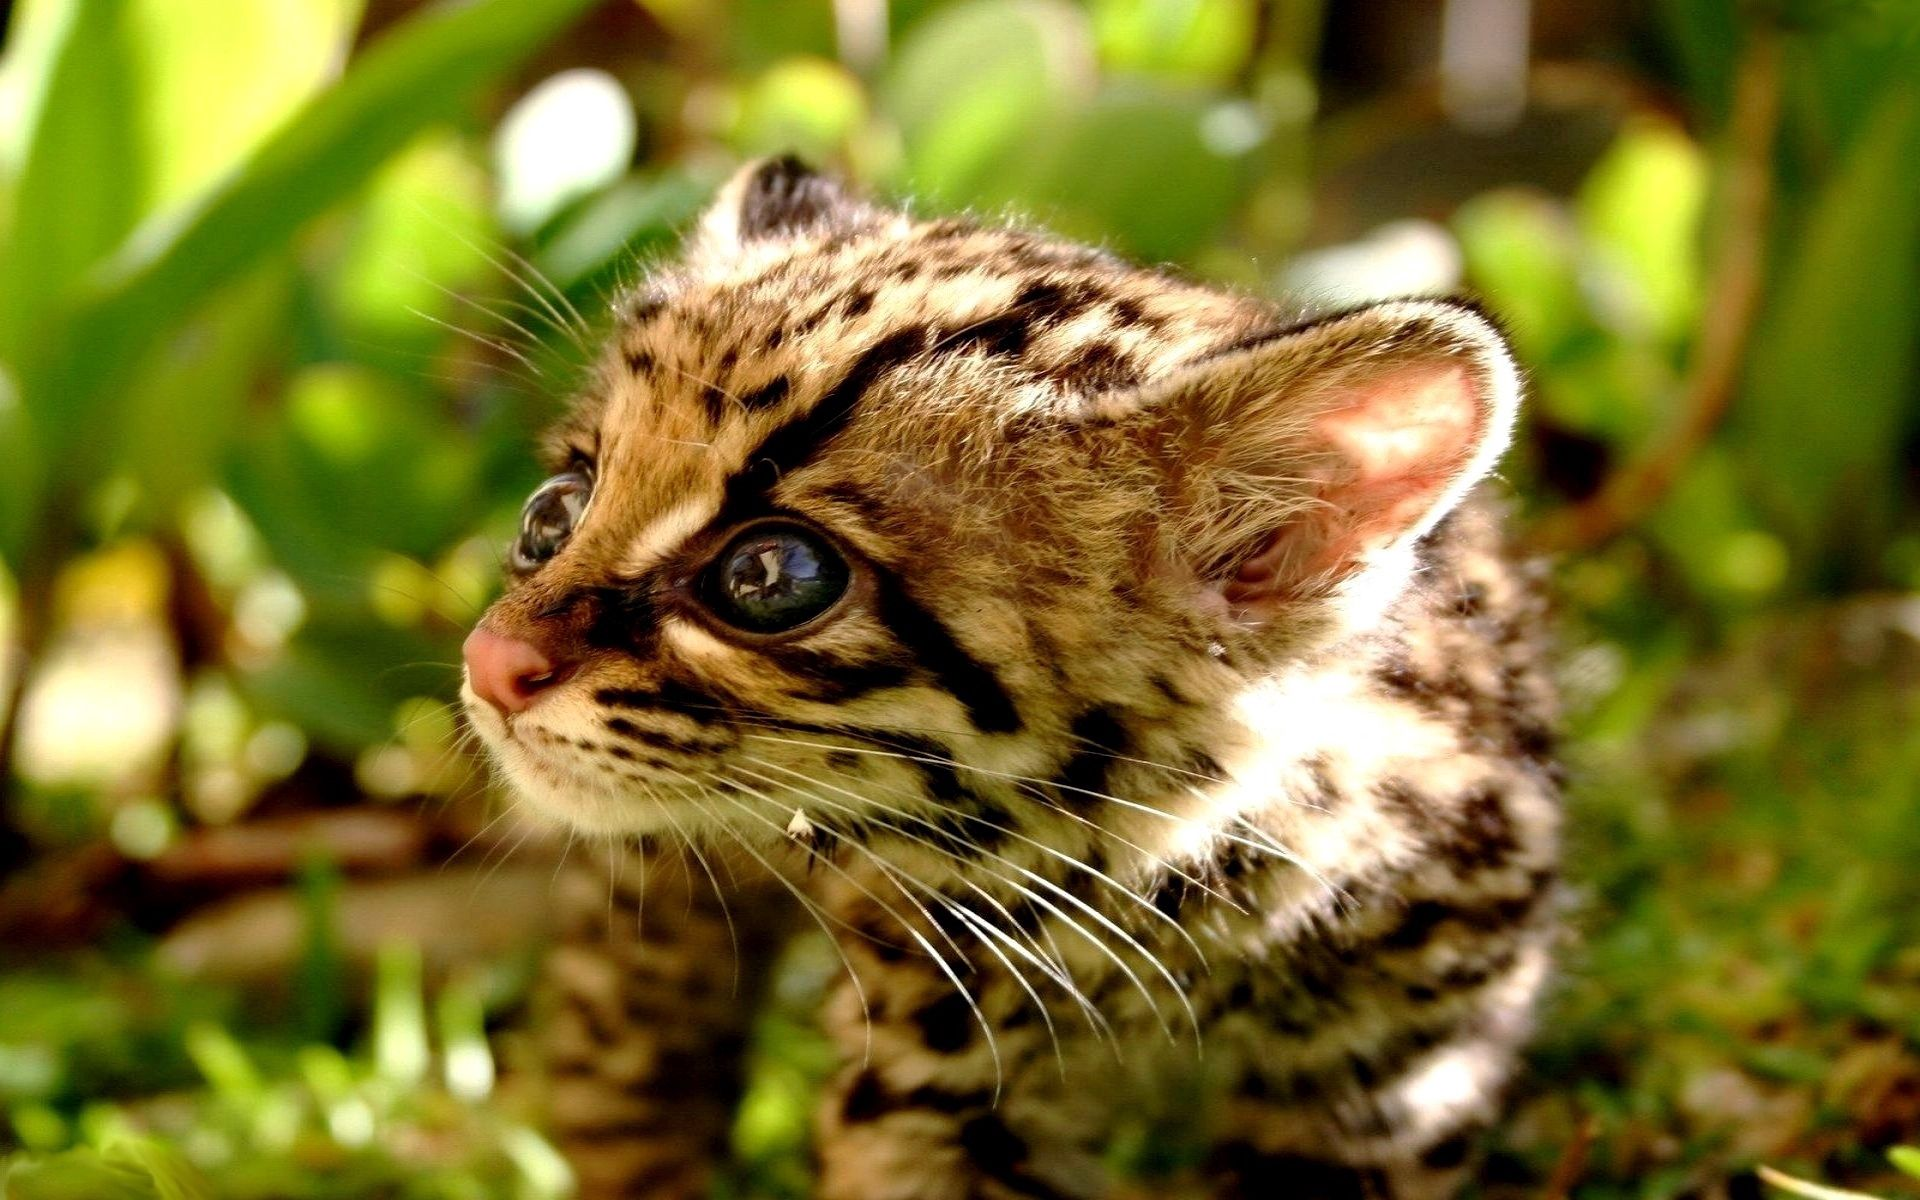 66532 download wallpaper Animals, Cheetah, Cat, Young, Kid, Tot, Joey, Seal screensavers and pictures for free